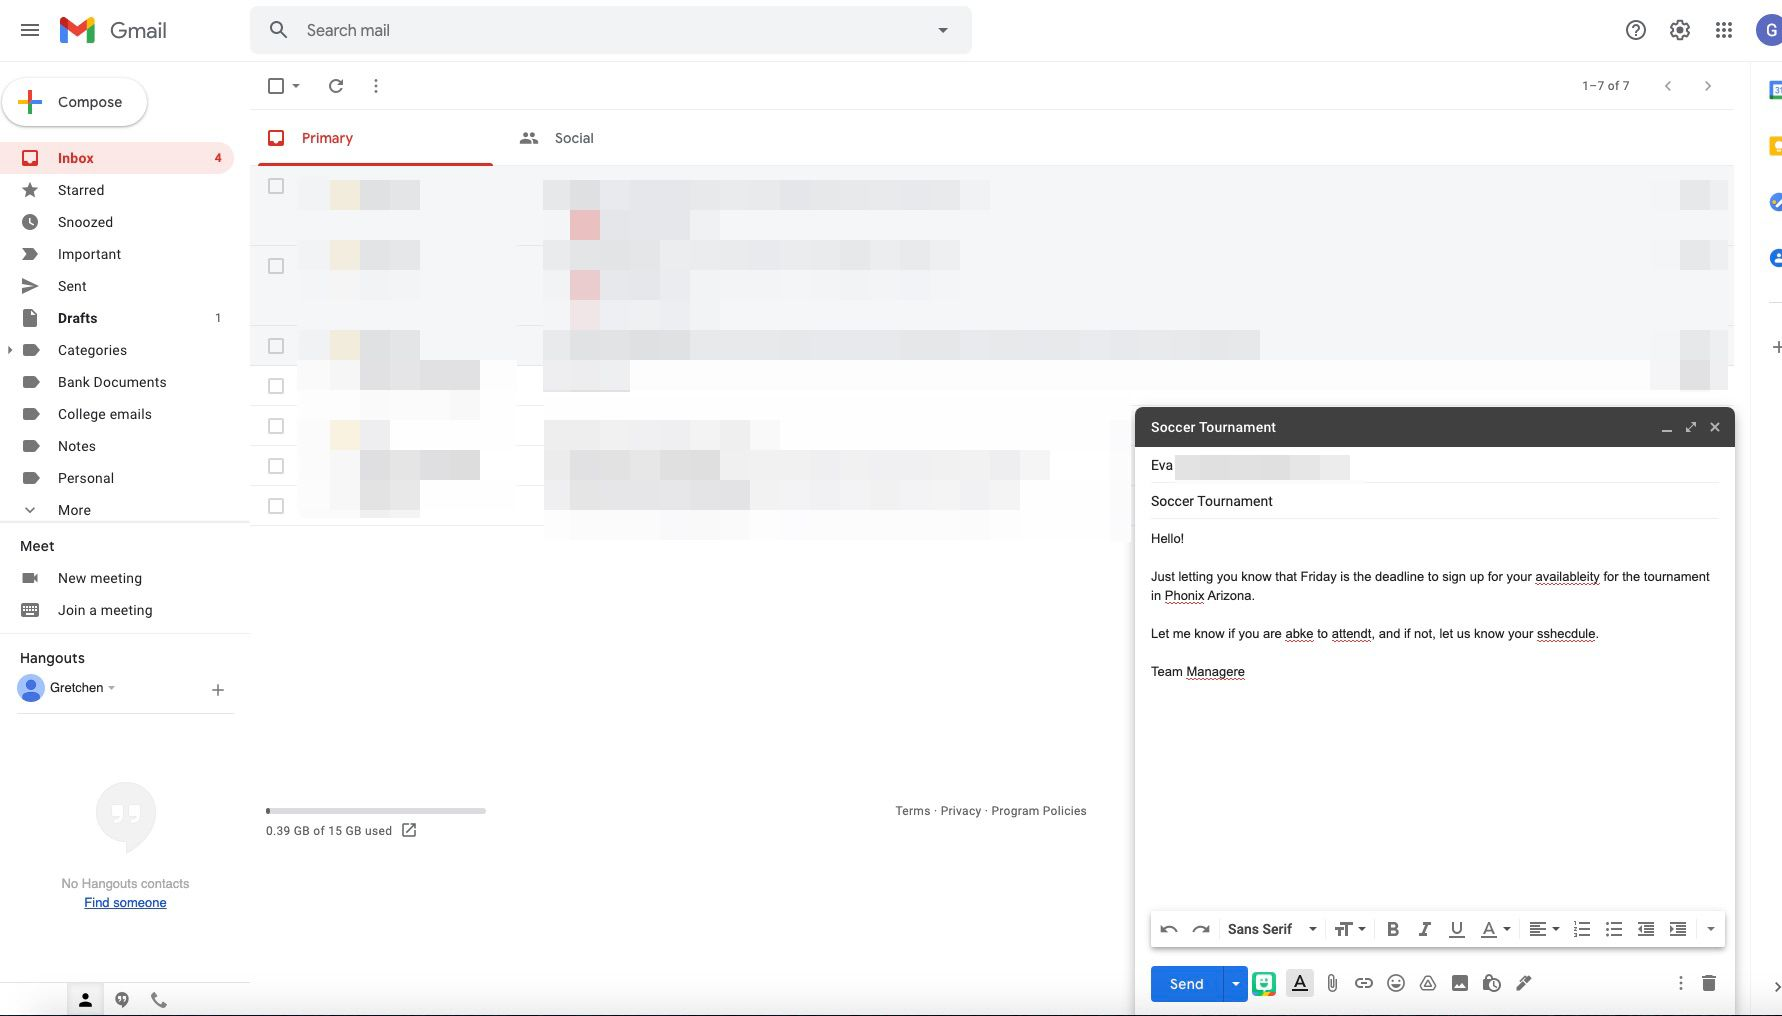 A new Gmail message sample with misspellings